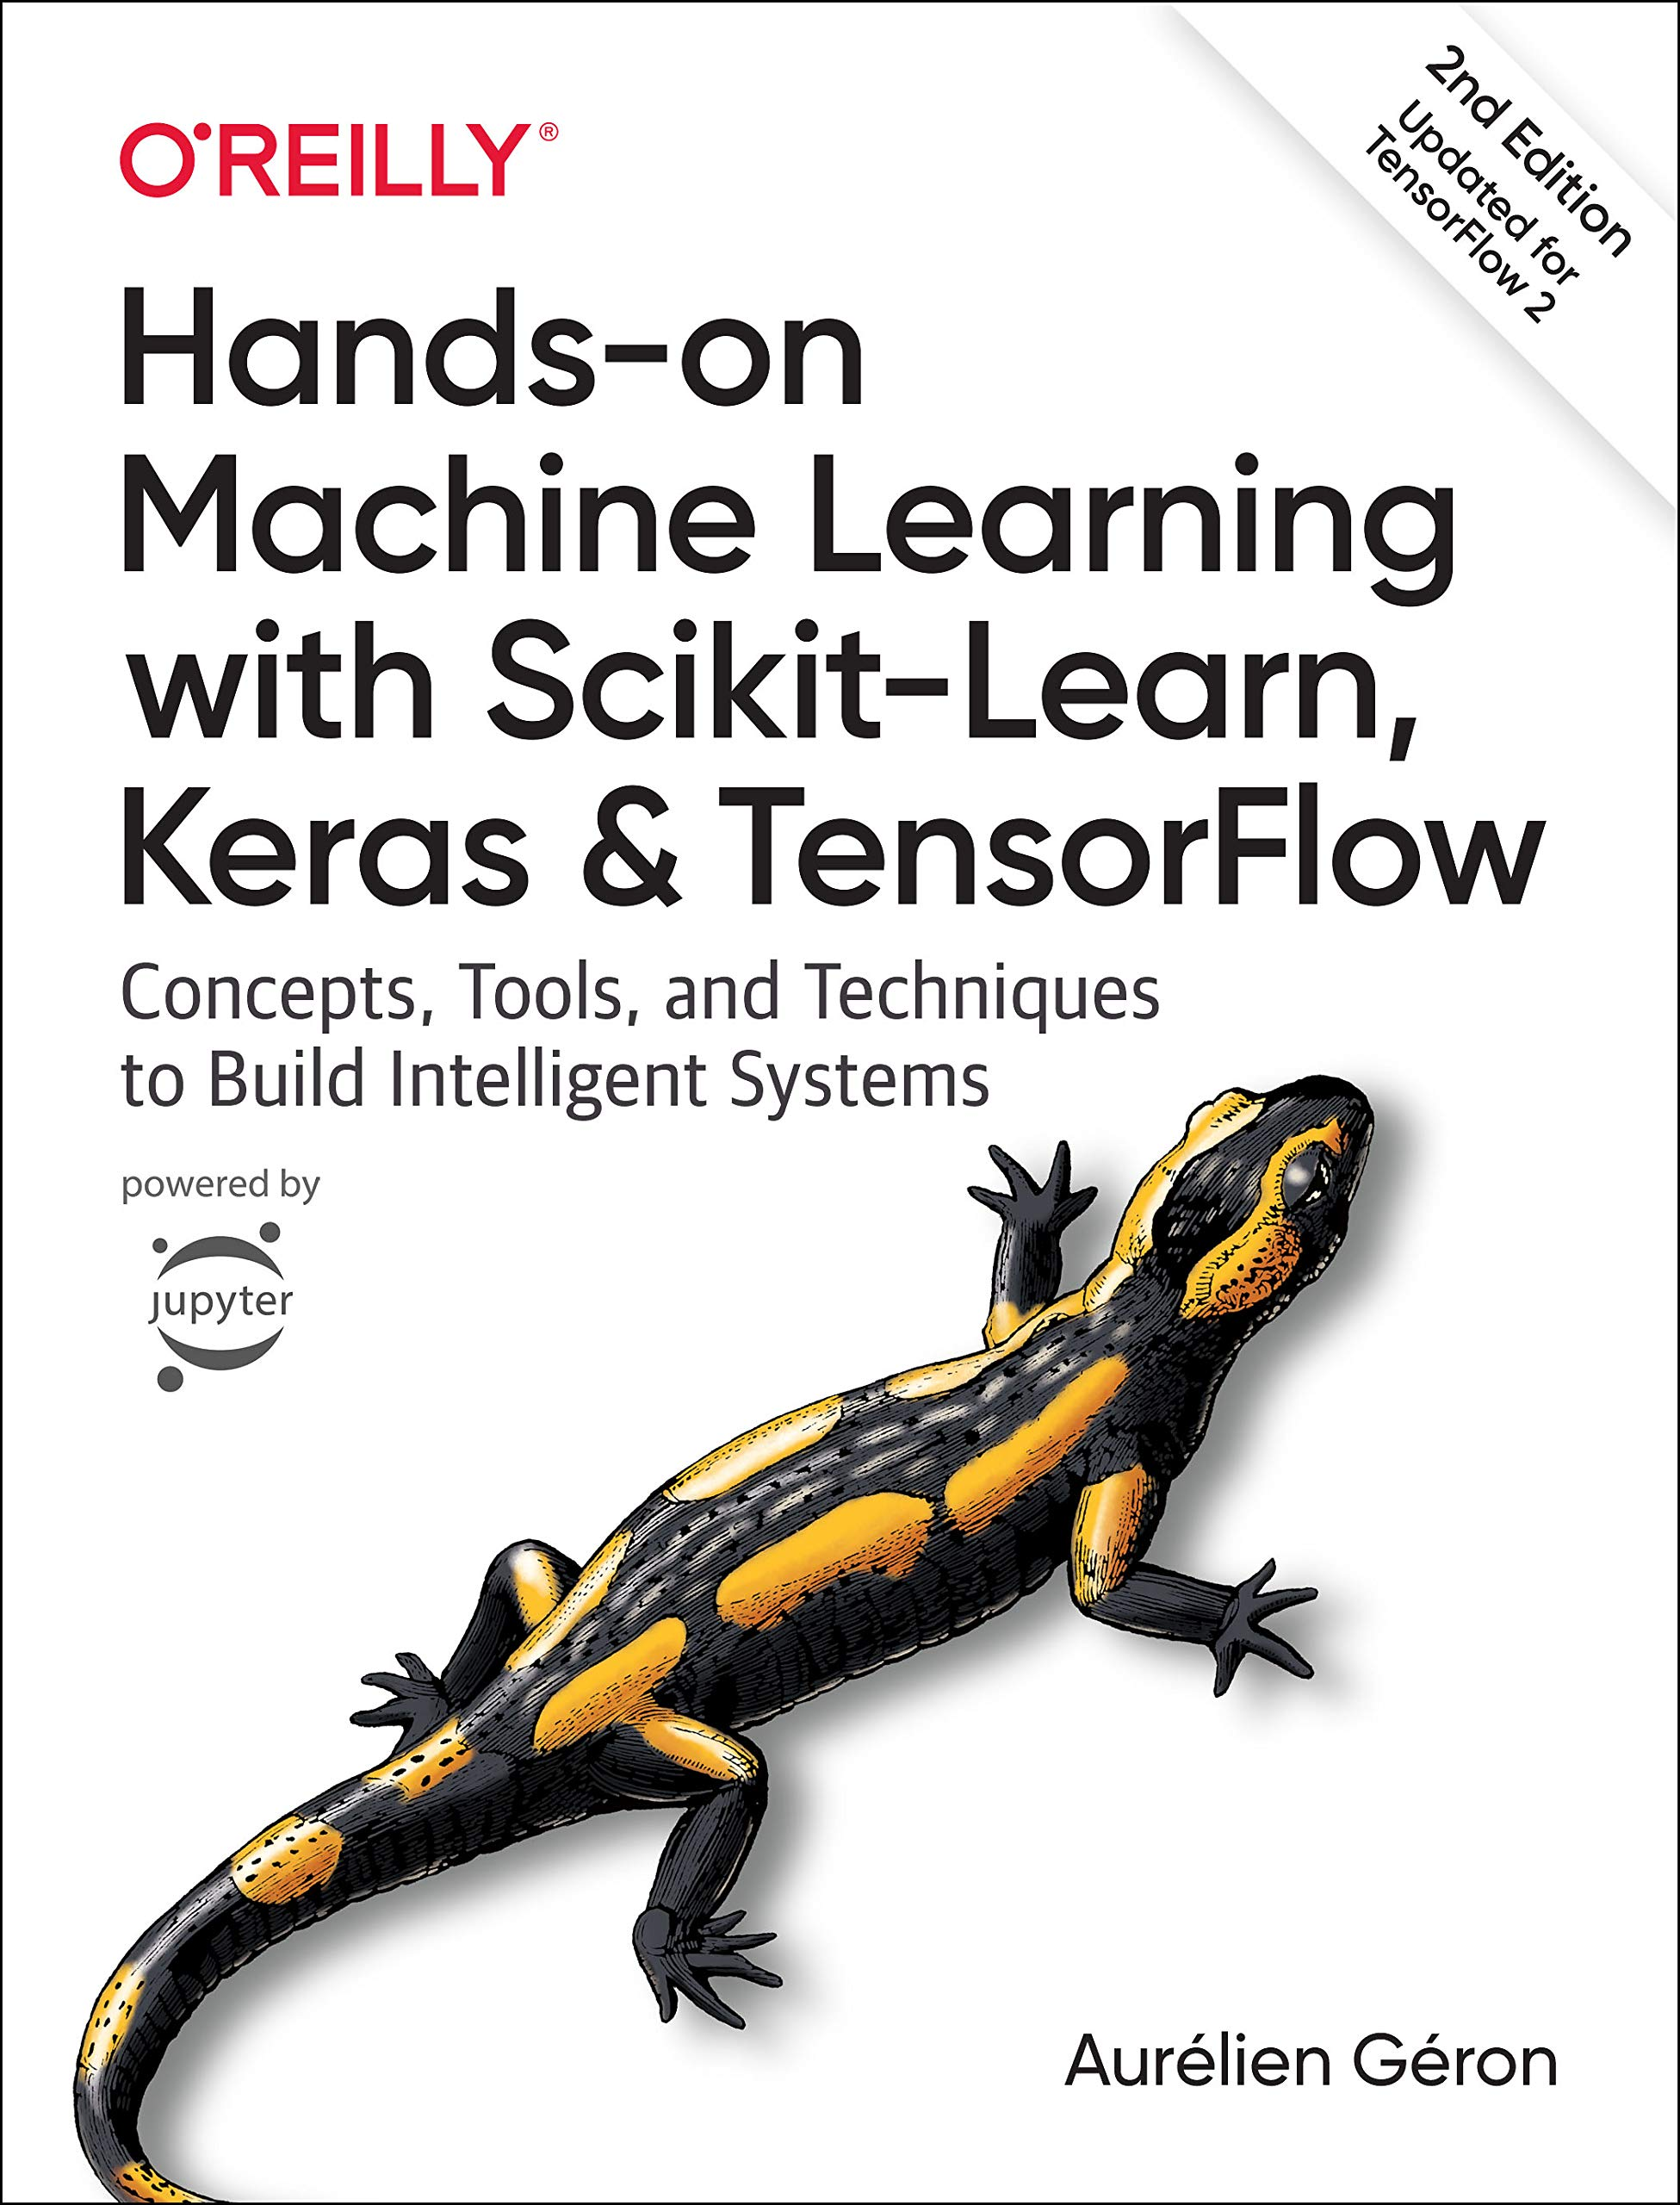 Hands-on Machine Learning with Scikit-Learn, Keras, and